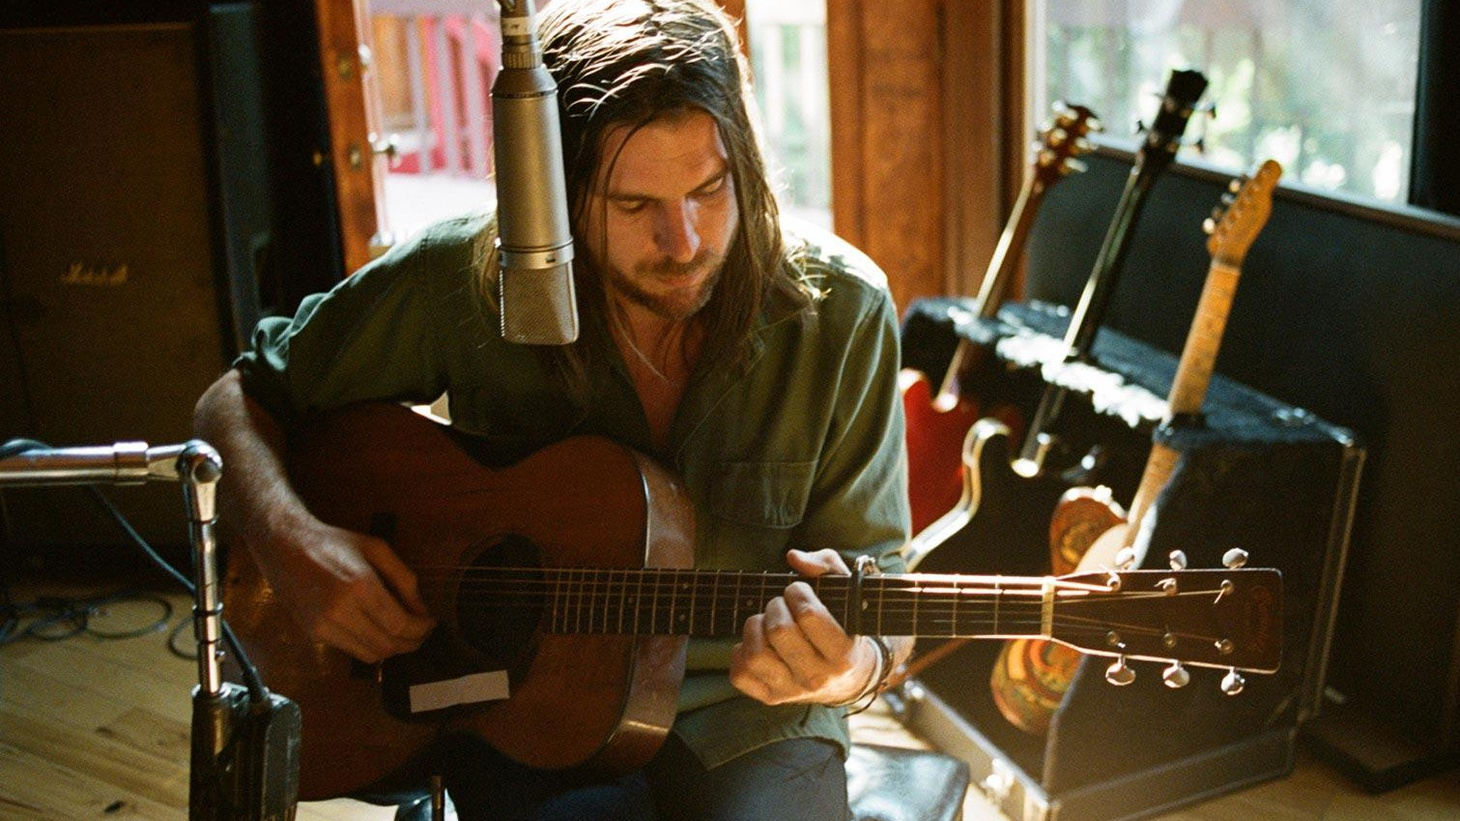 Producer-musician Jonathan Wilson's added his special touch to recordings by promising new artists and veterans alike. On his own record he rounds up friends like..